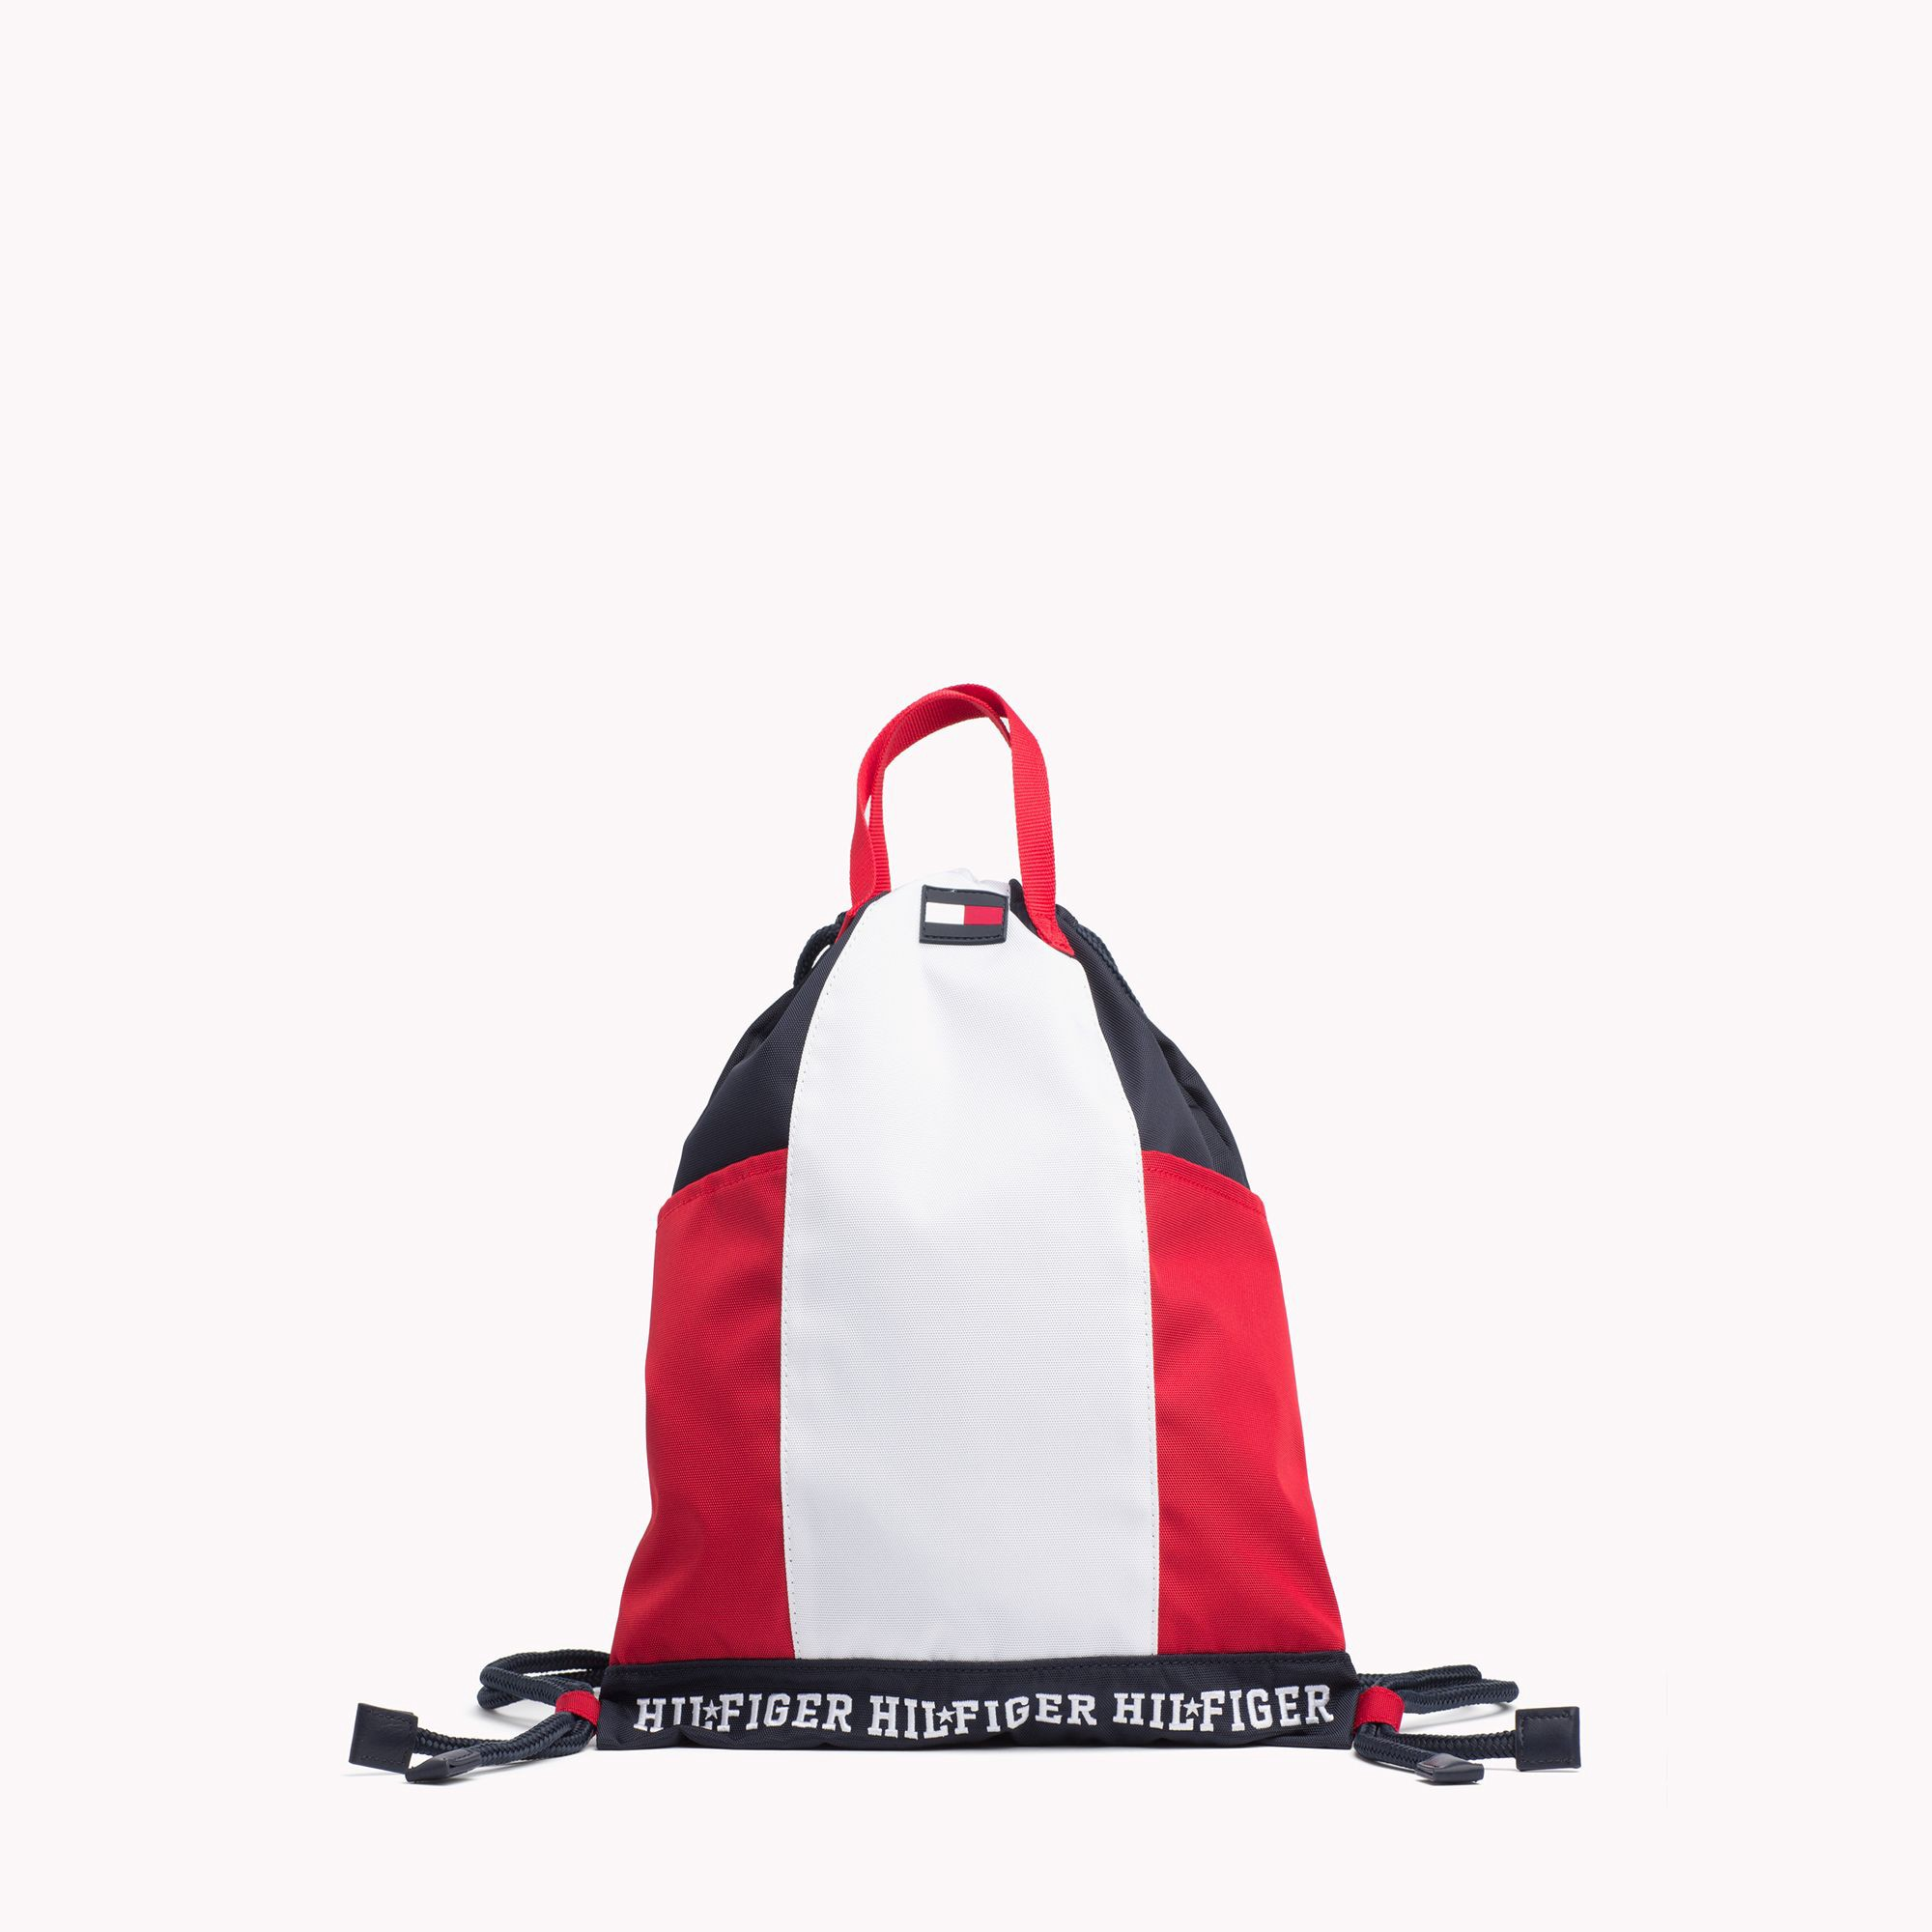 96384f46306 Tommy Hilfiger Th Kids Drawstring Backpack - Corporate Os